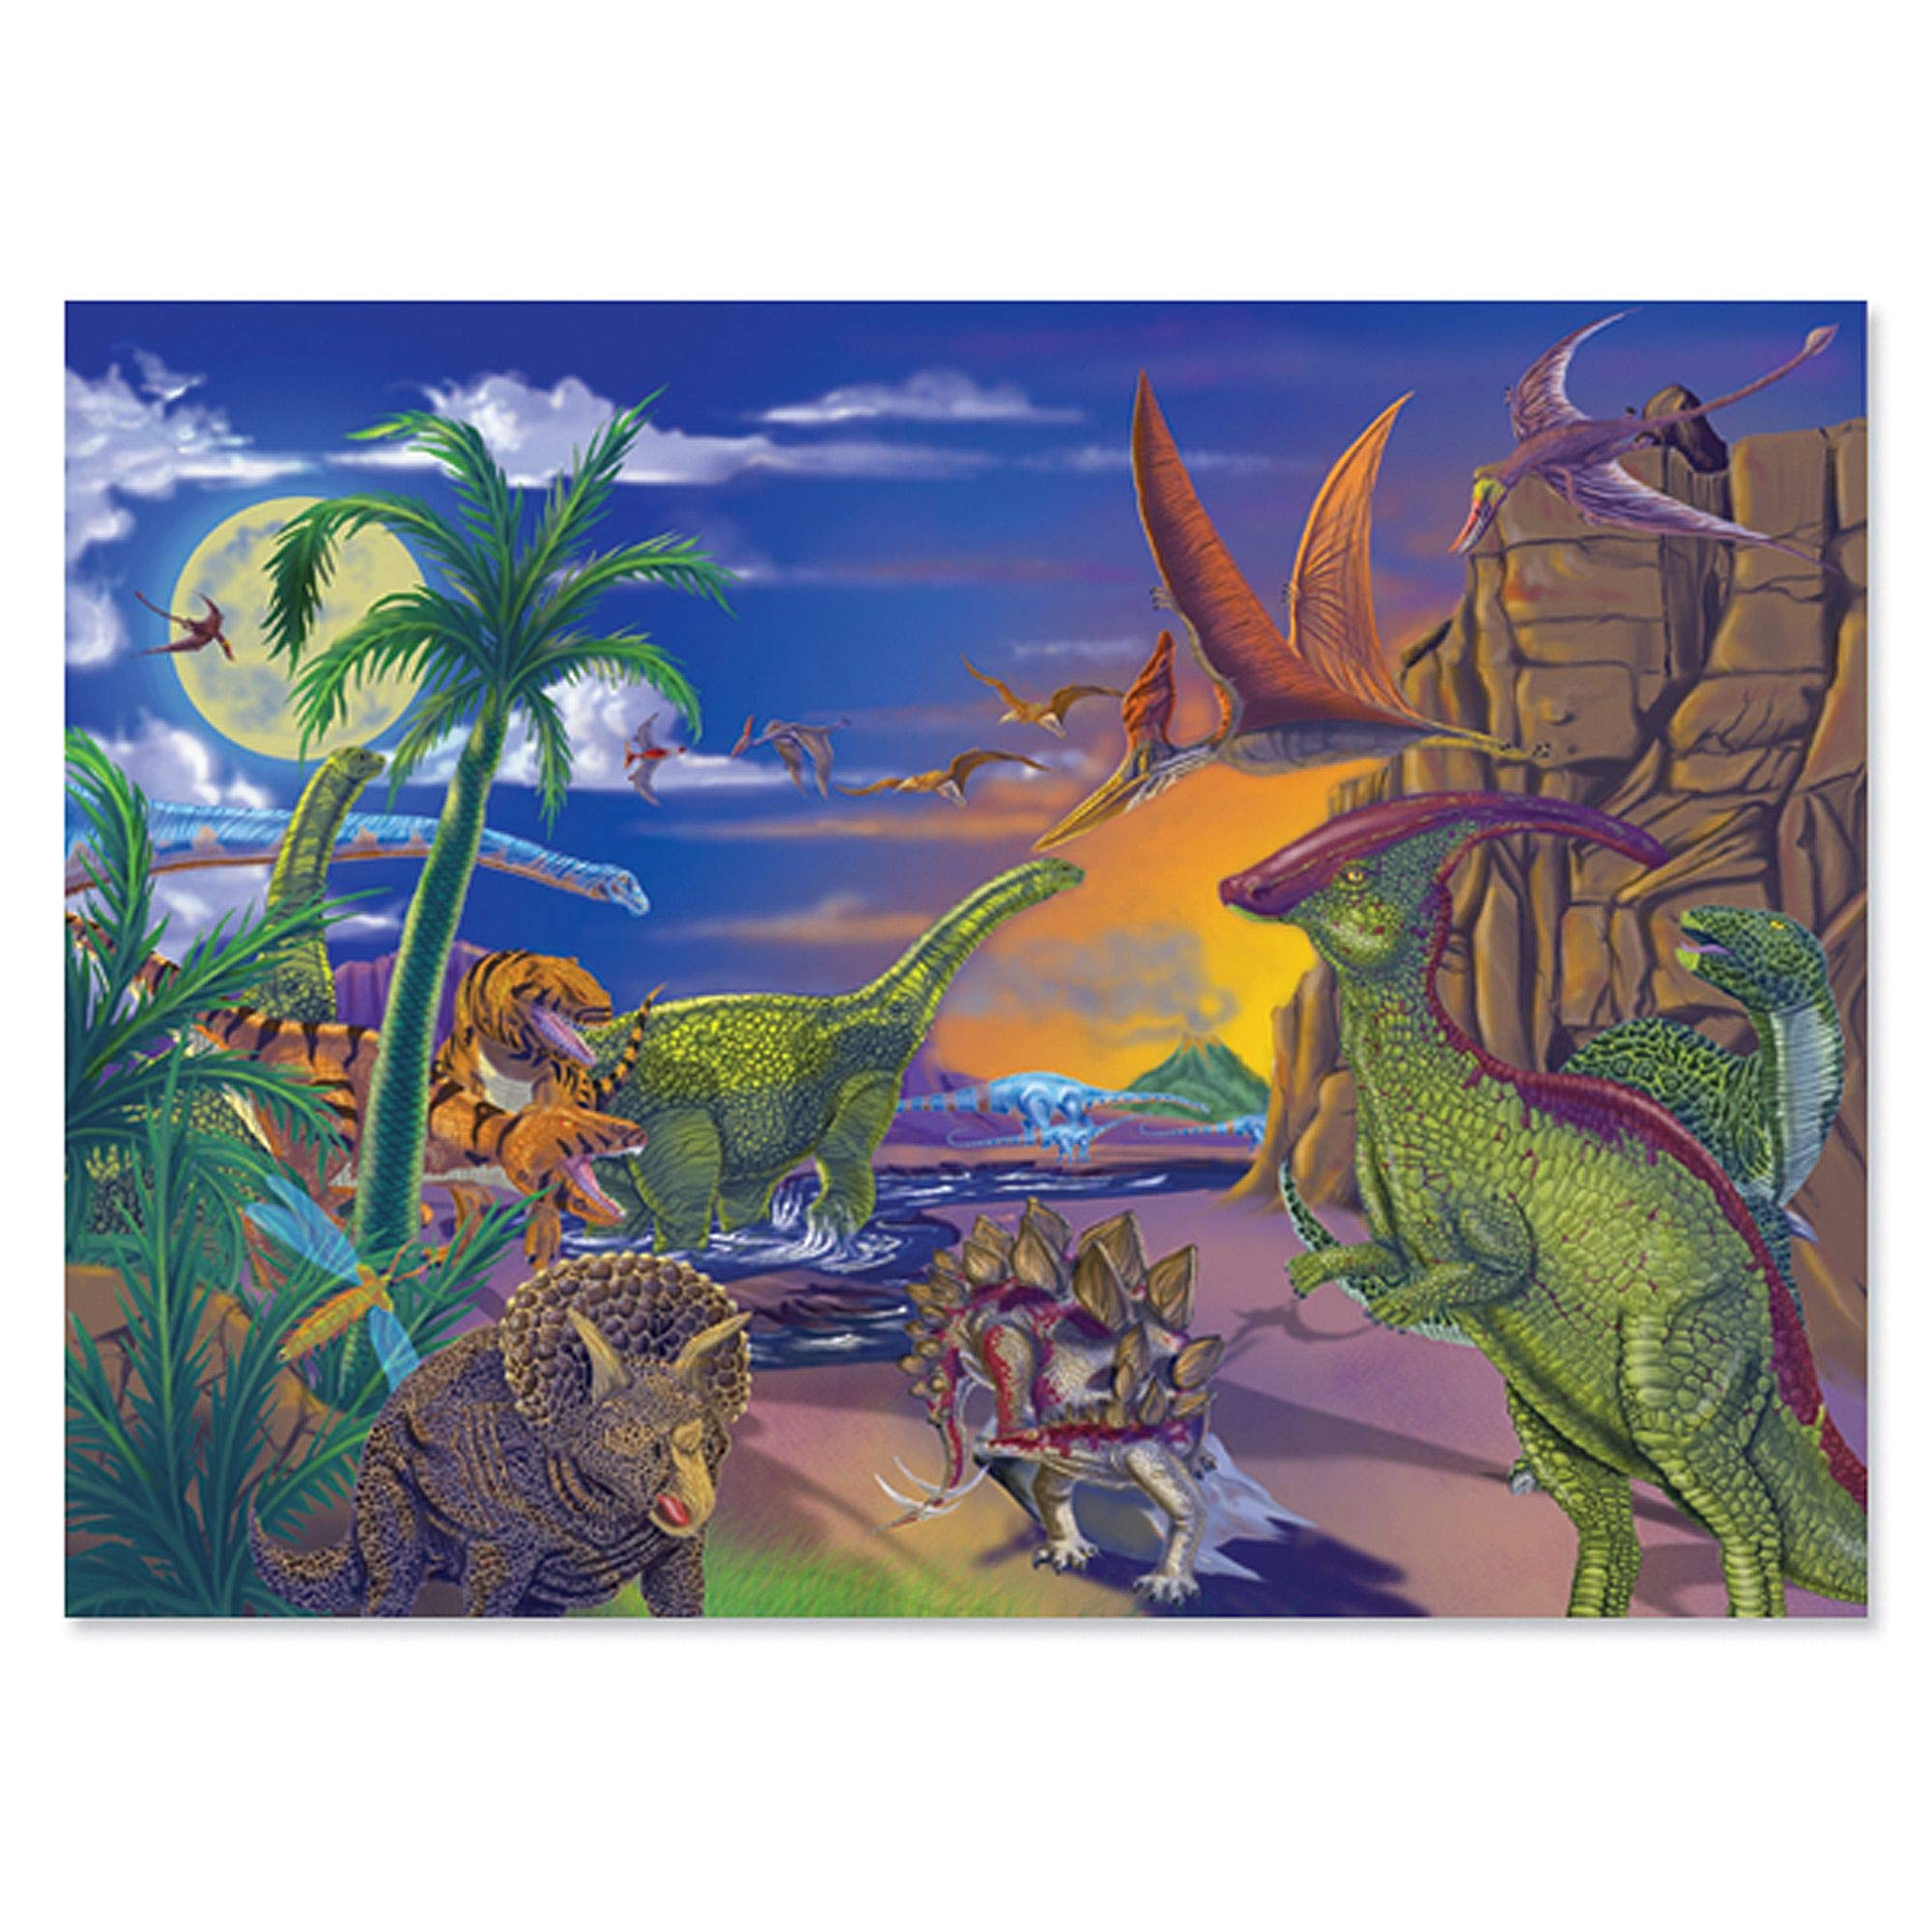 Melissa & Doug Land of Dinosaurs Jigsaw Puzzle, Wipe-Clean Surface, 60 Pieces, 10.9'' H x 7.4'' W x 1.8'' L